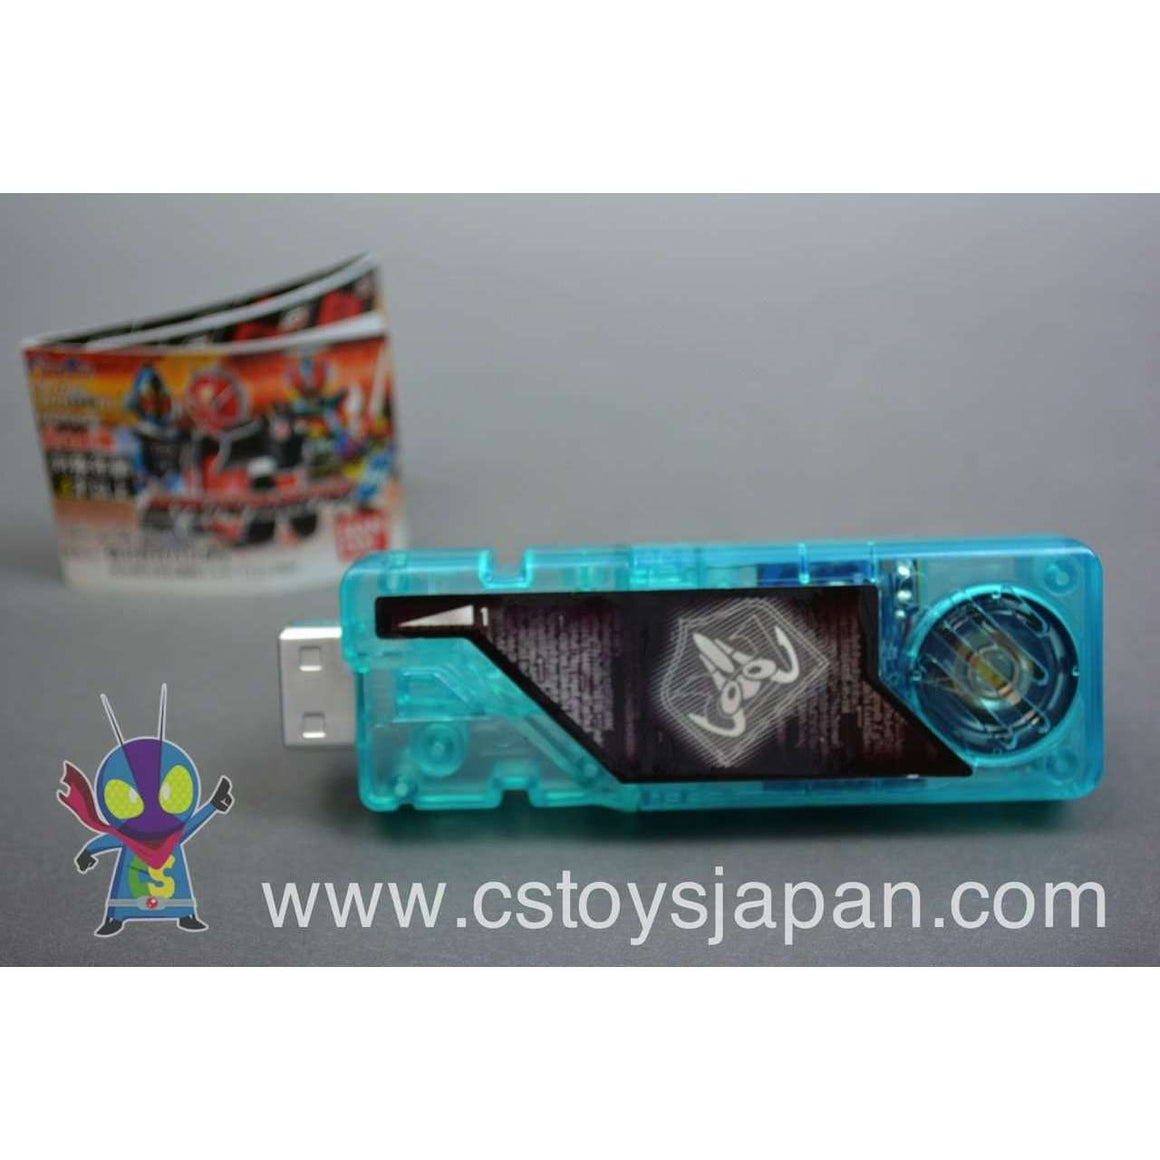 CSTOYS INTERNATIONAL:Kamen Rider W DX Sound Capsule Gaia Memory Vol.8 #08 Ichigo